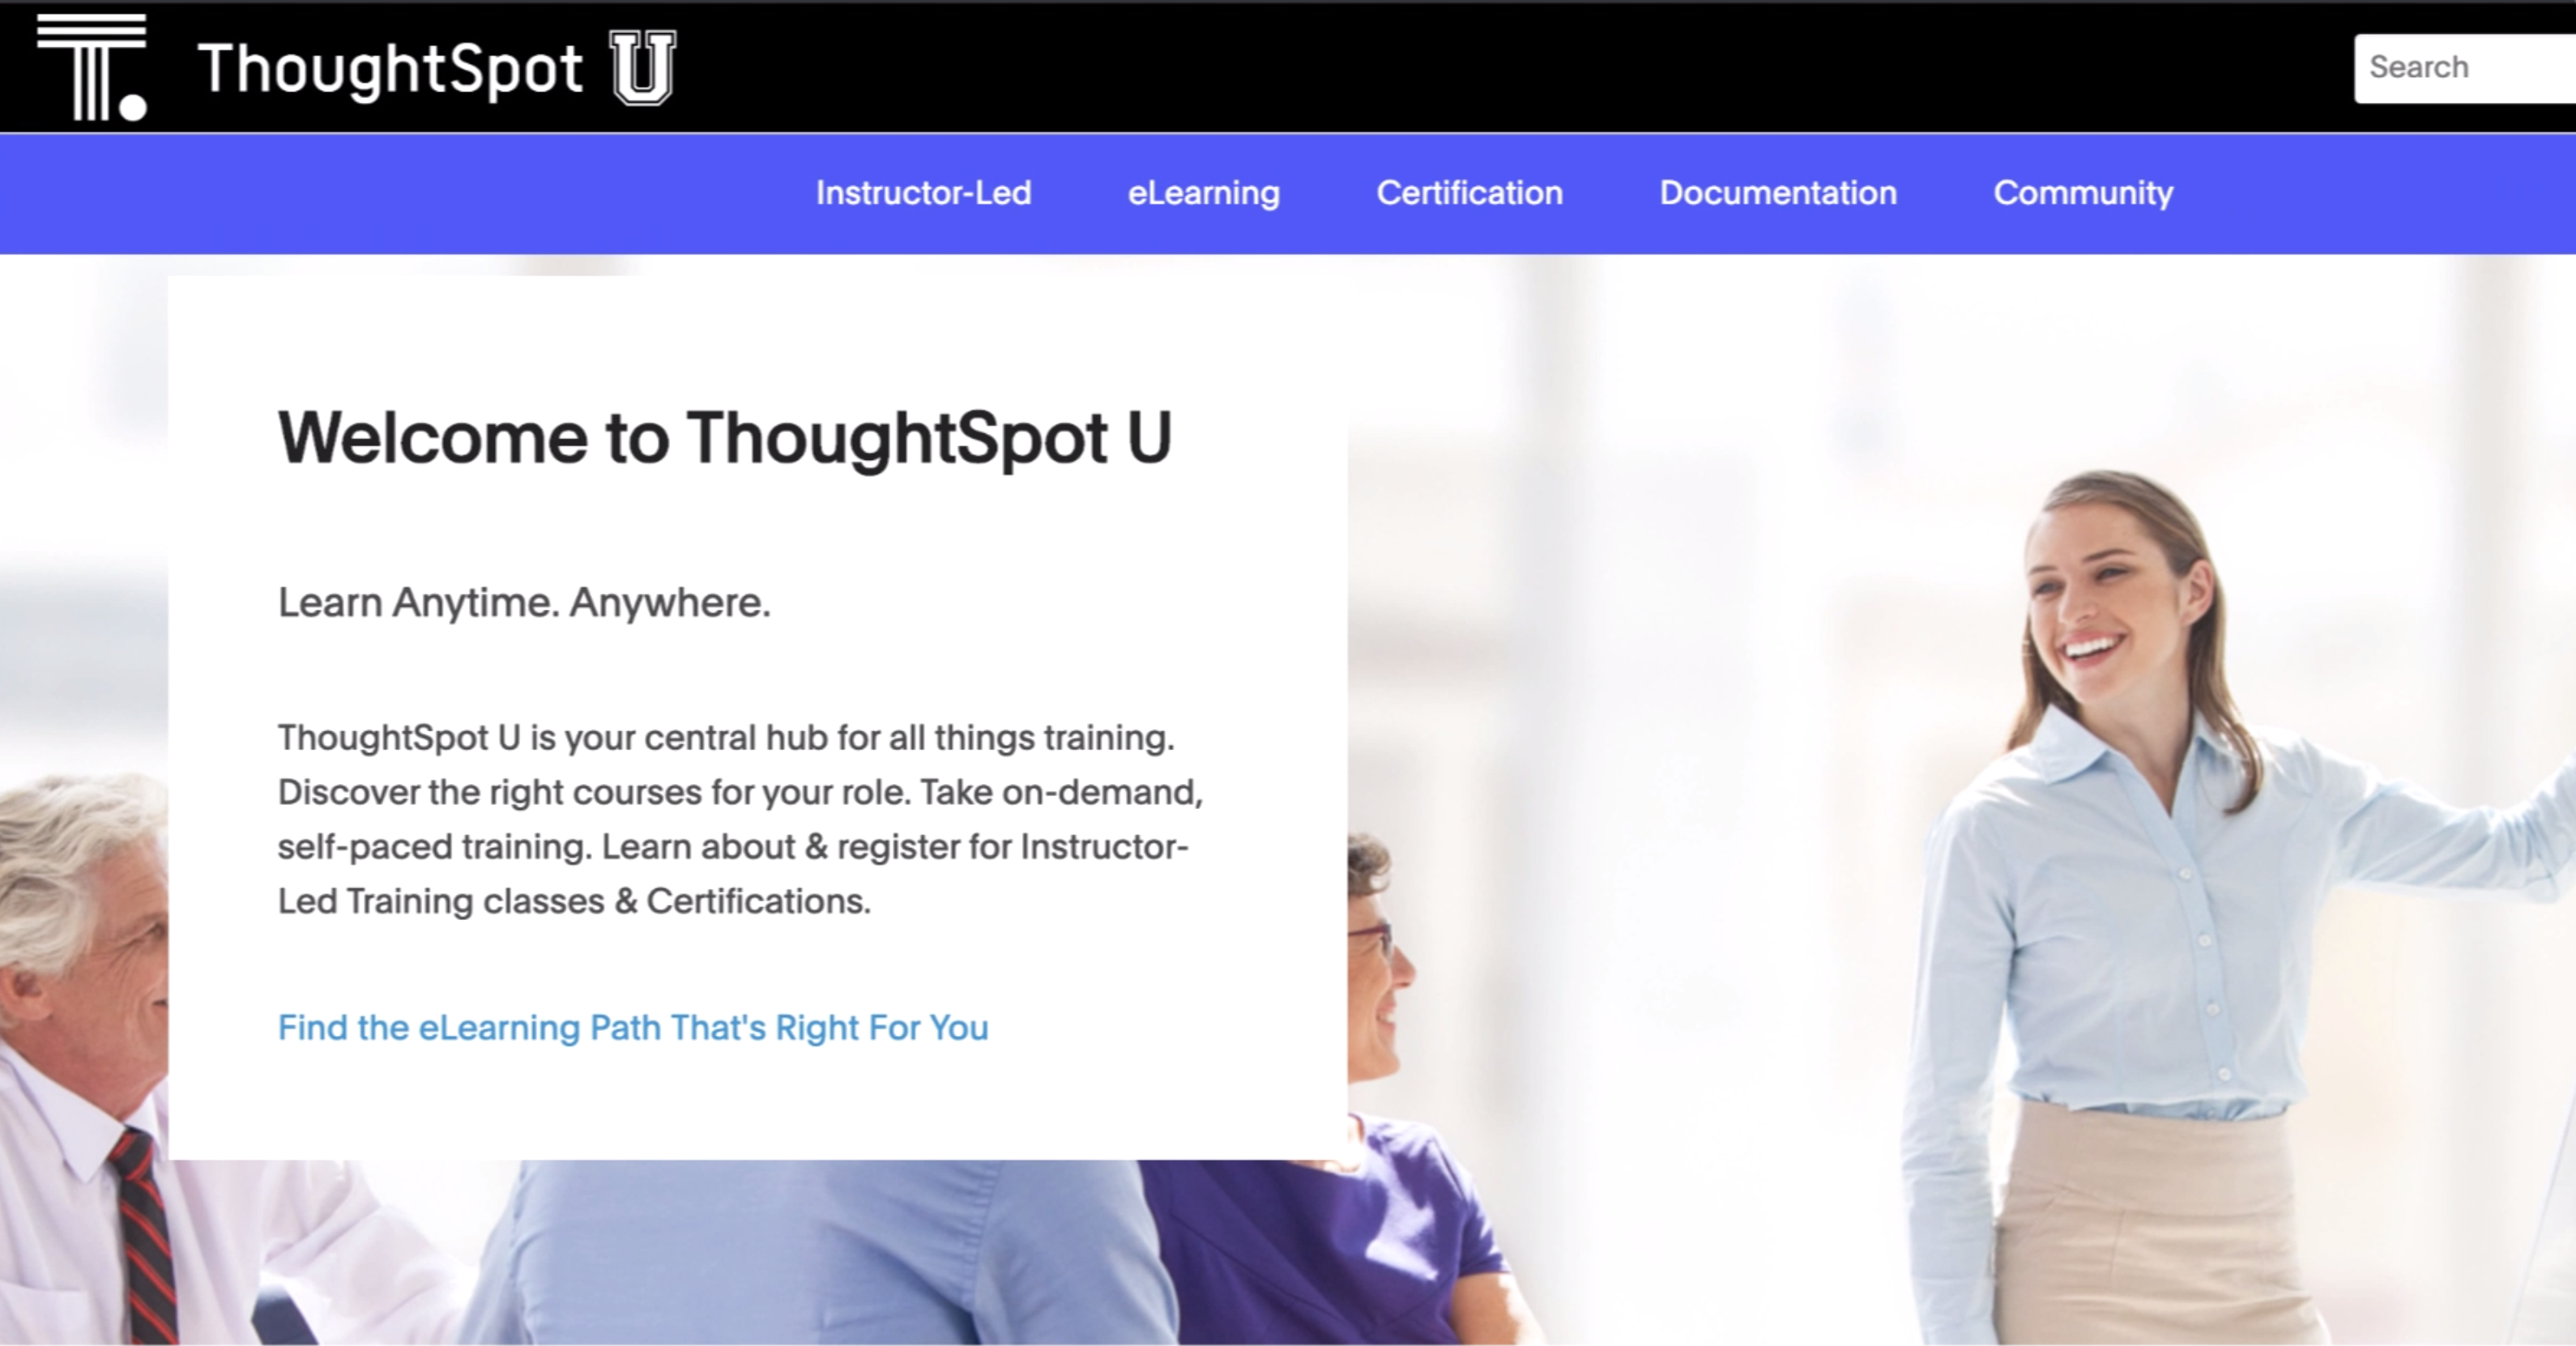 Welcome to ThoughtSpot U